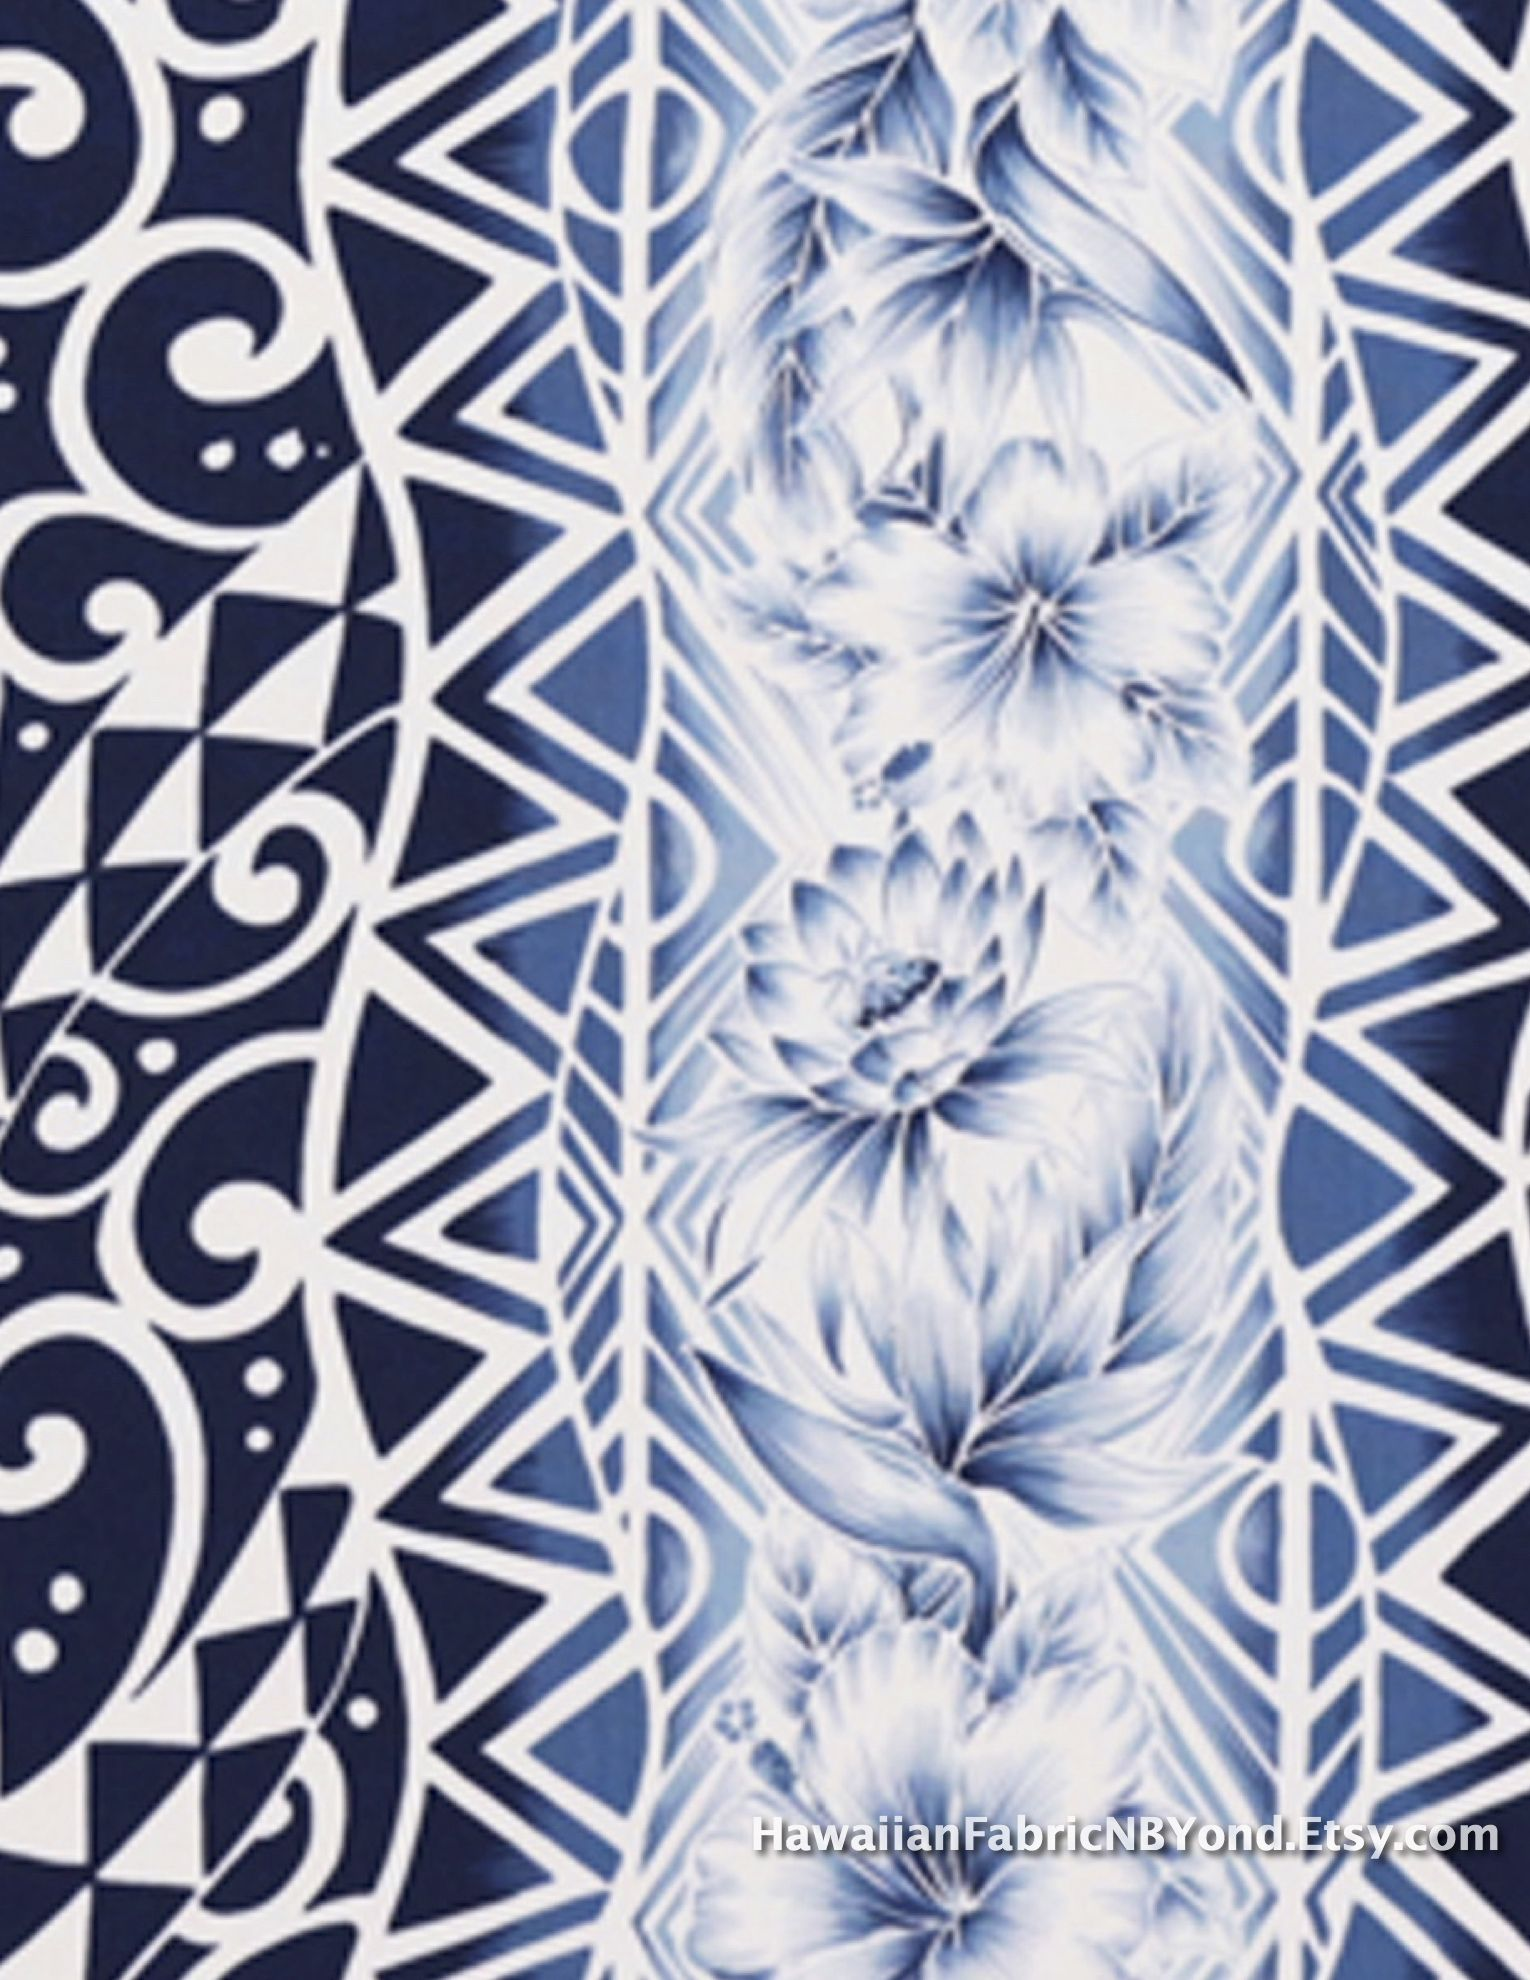 Hawaiian fabric: Tapa patterns and tropical flowers. Cotton. Check ...